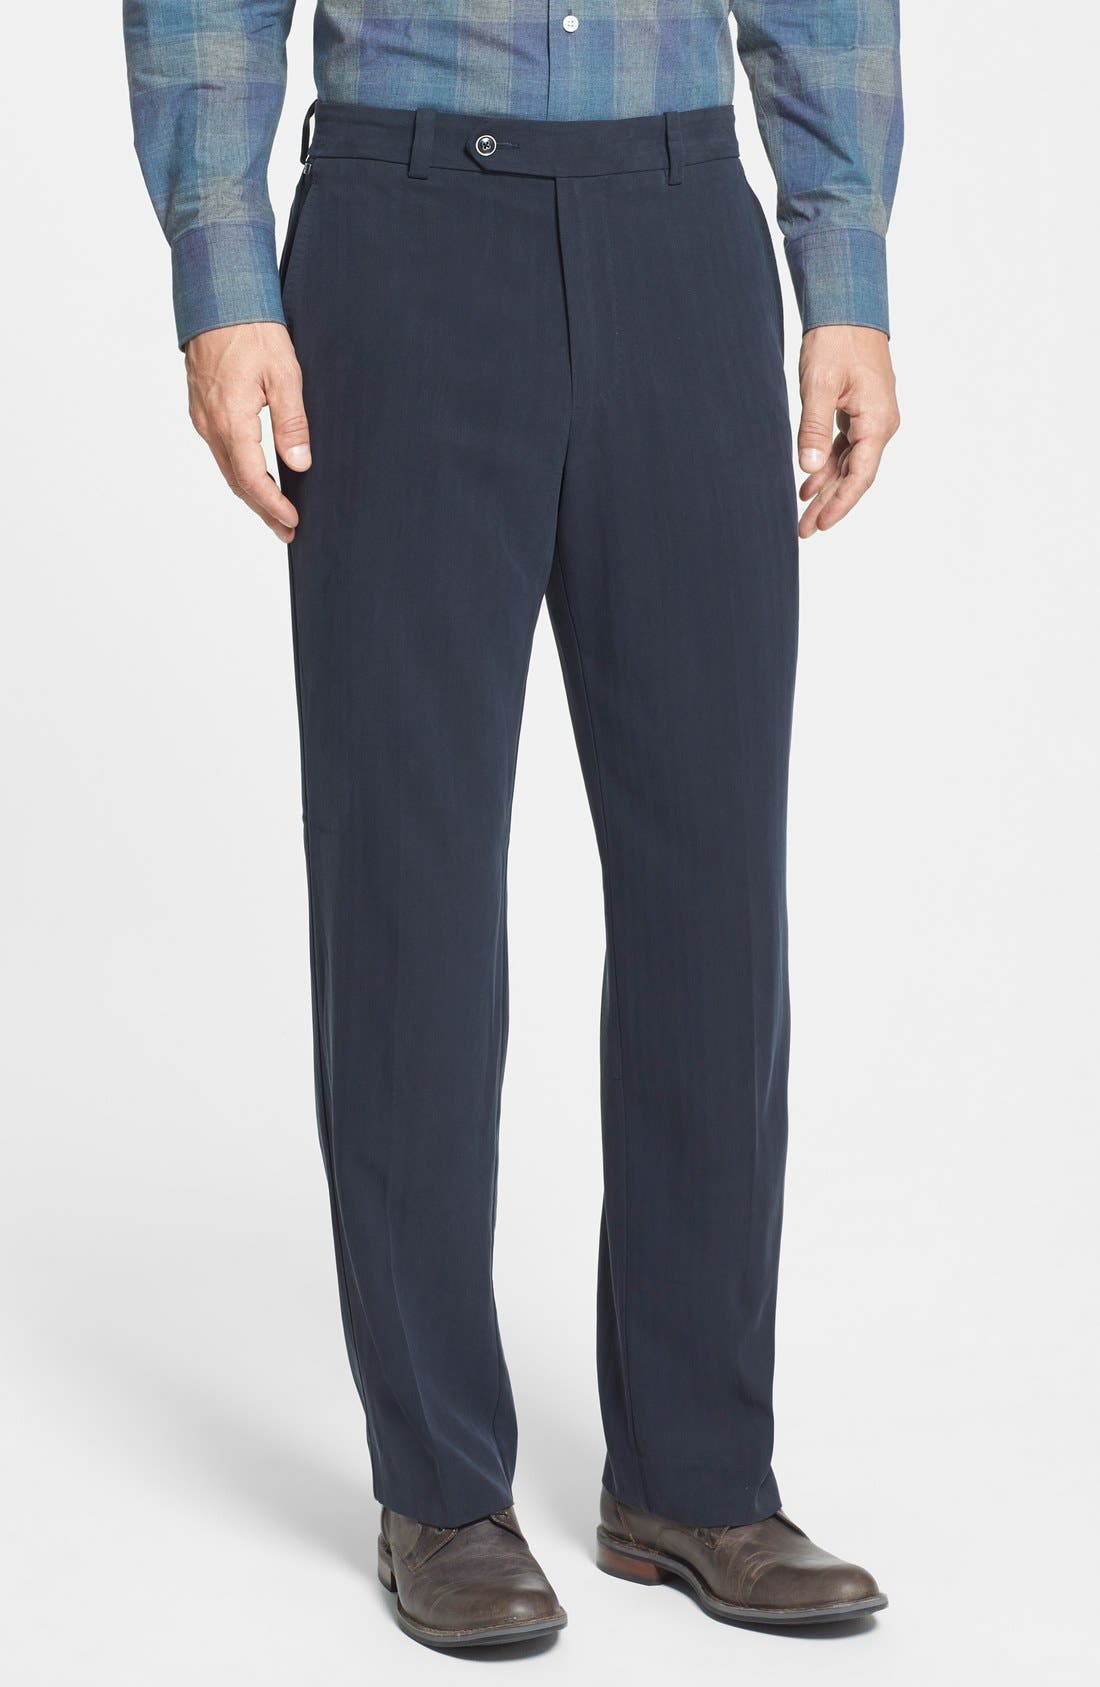 Main Image - Tommy Bahama 'Flying Fishbone' Flat Front Pants